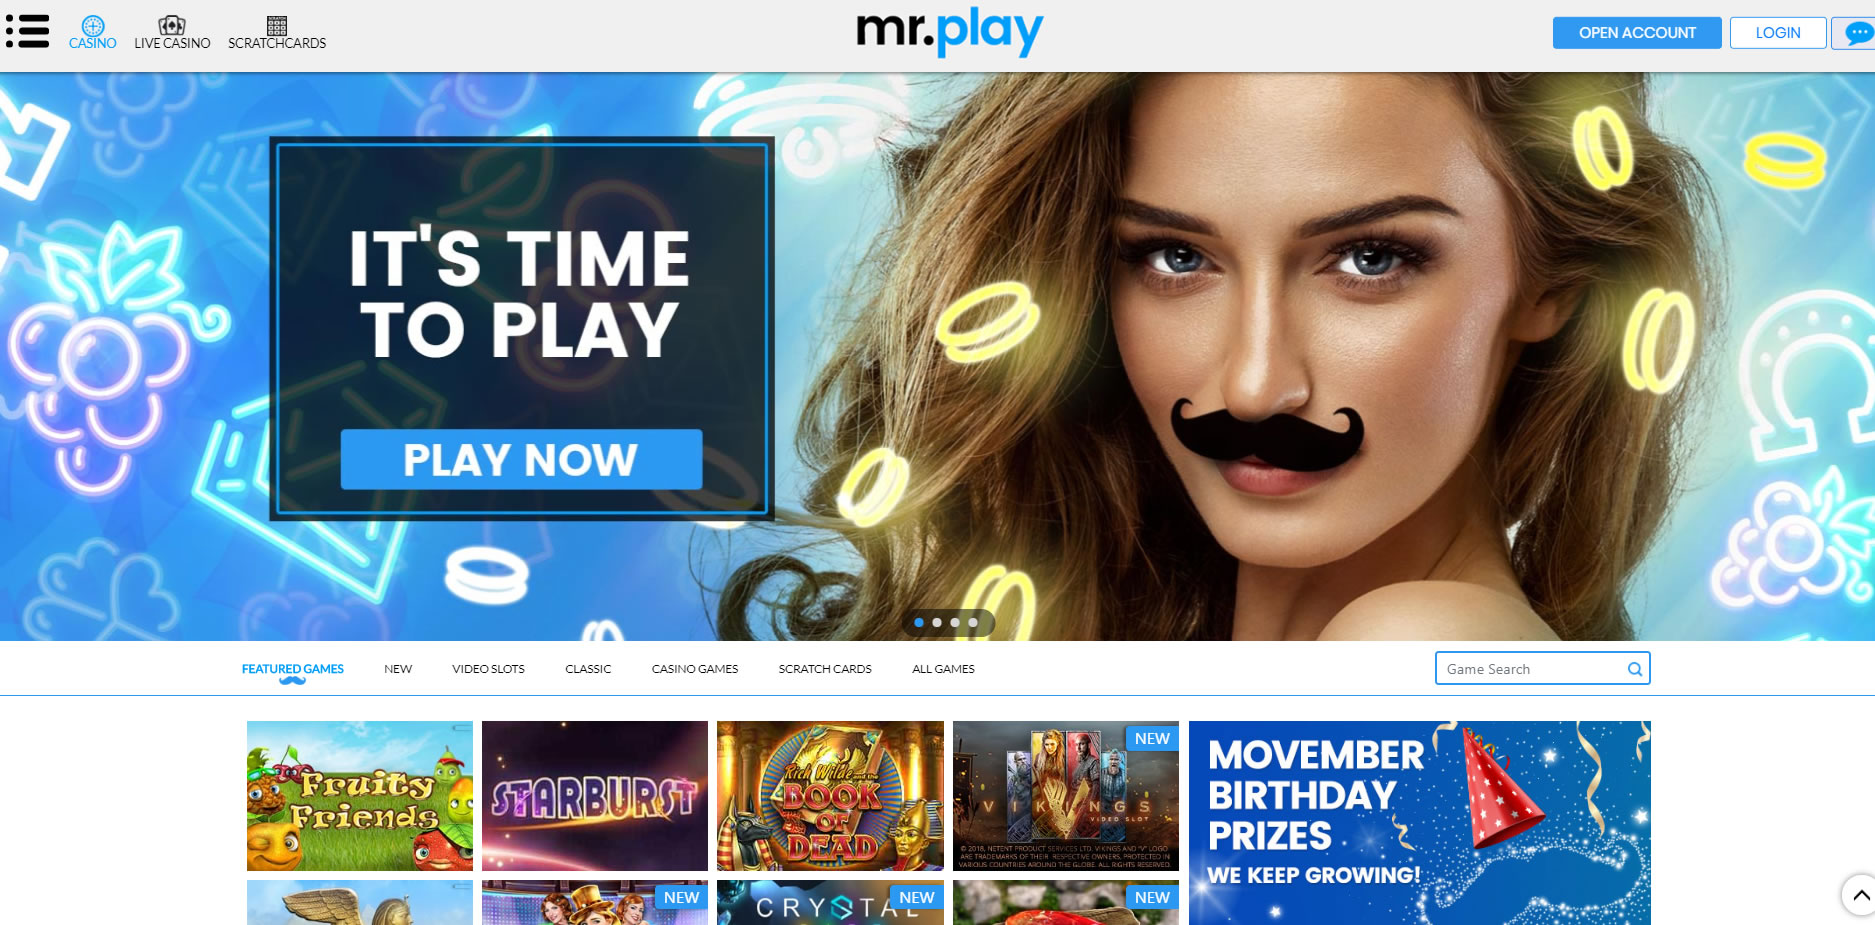 mrplay casino review